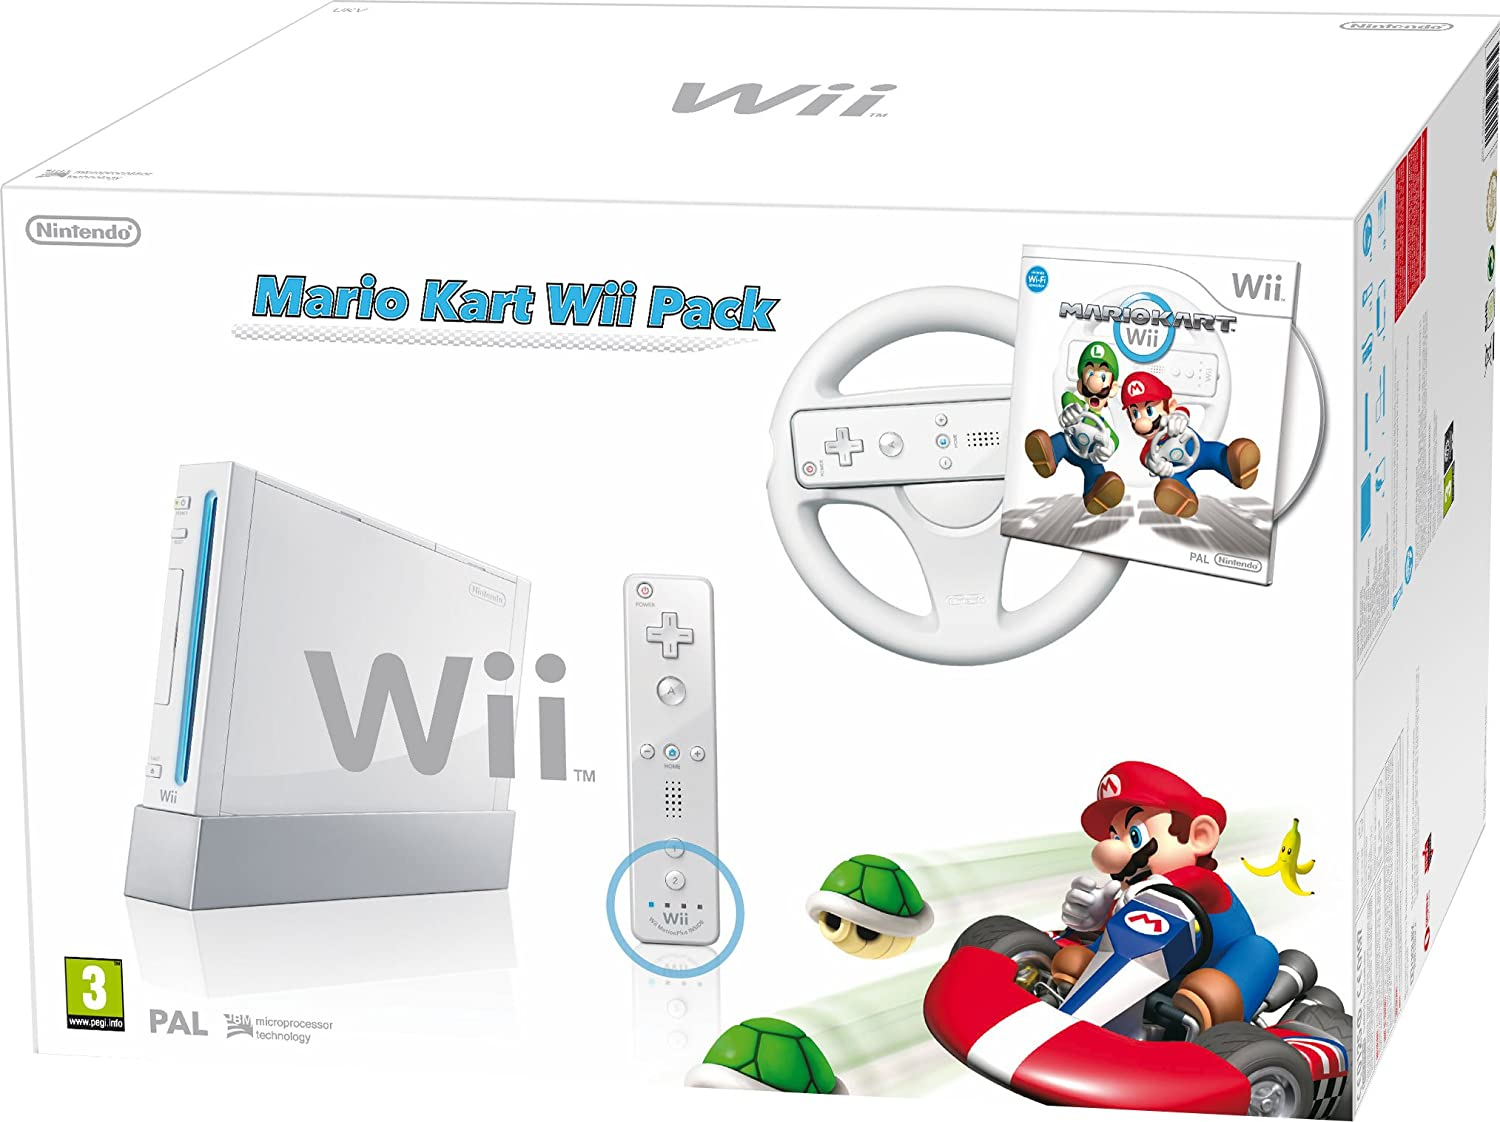 Nintendo Wii + Mario Kart - juegos de PC (Wii, IBM PowerPC, SD, 0.5 GB, 802.11b, 802.11g, Color blanco): Amazon.es: Videojuegos